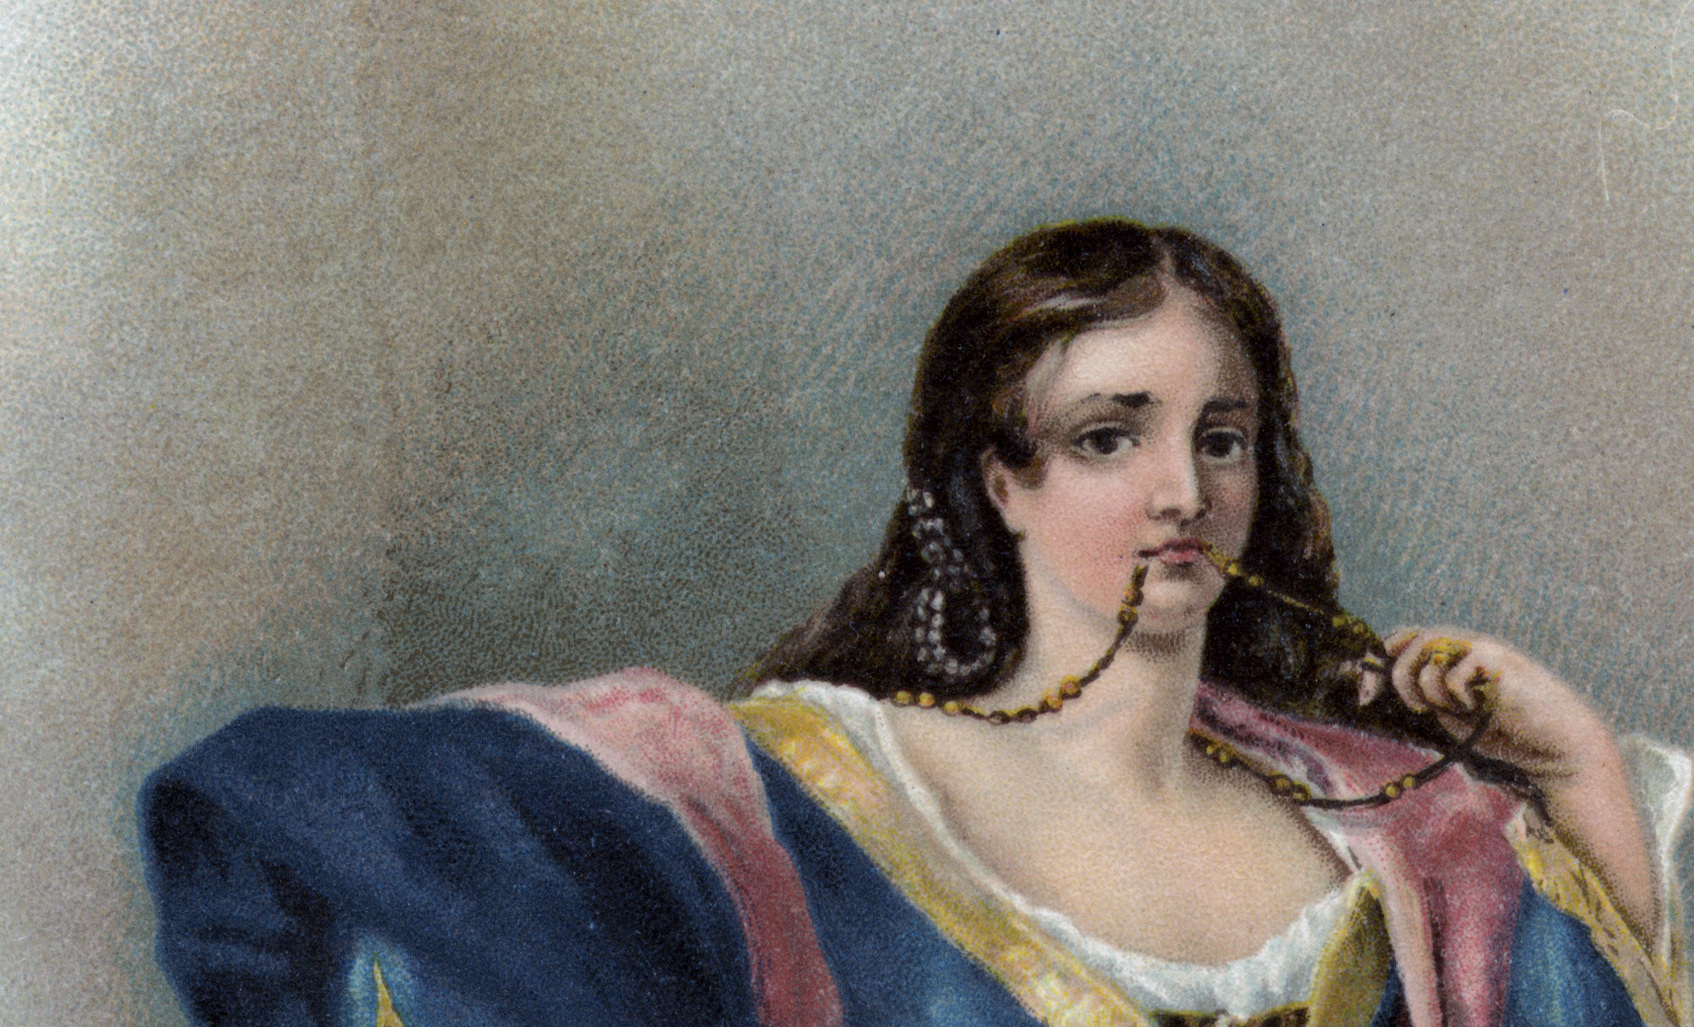 9 Shakespeare innuendoes you should have been embarrassed to read in English class